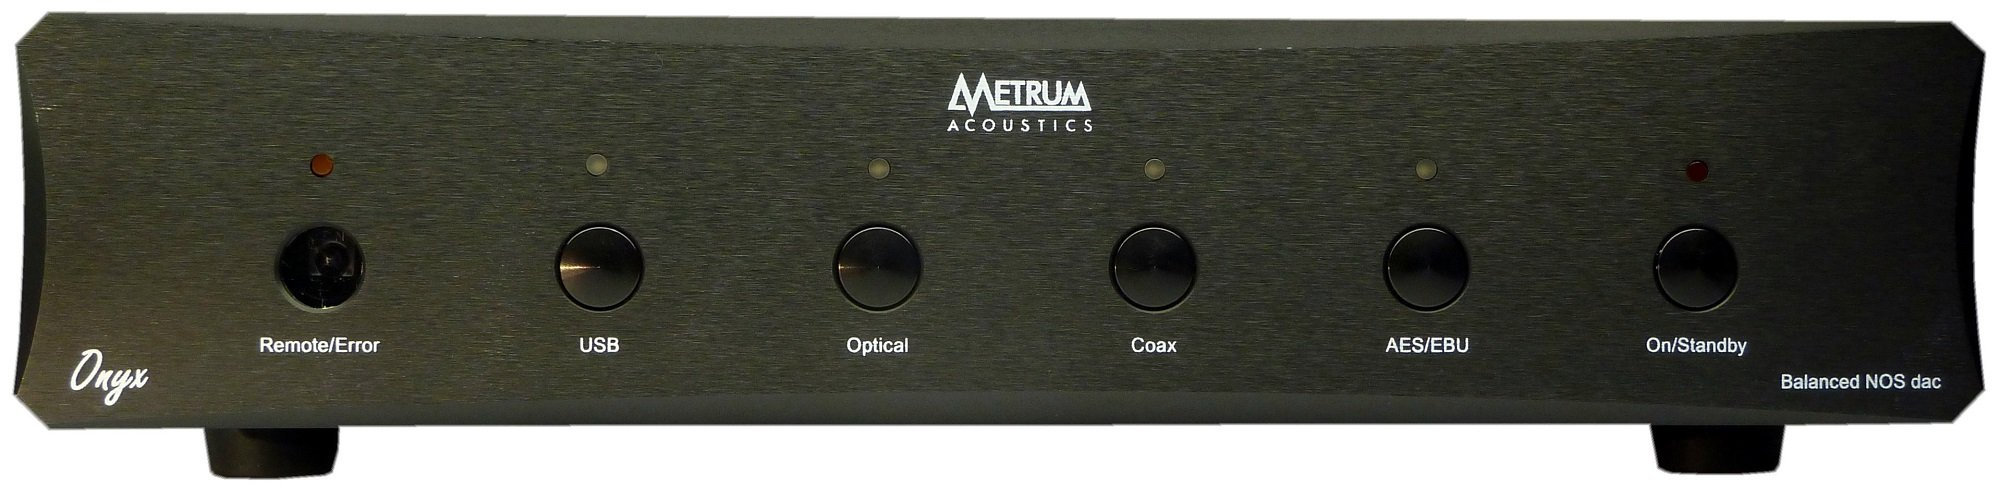 Metrum Acoustics ONYX Balanced non-oversampling DAC with remote (Black)